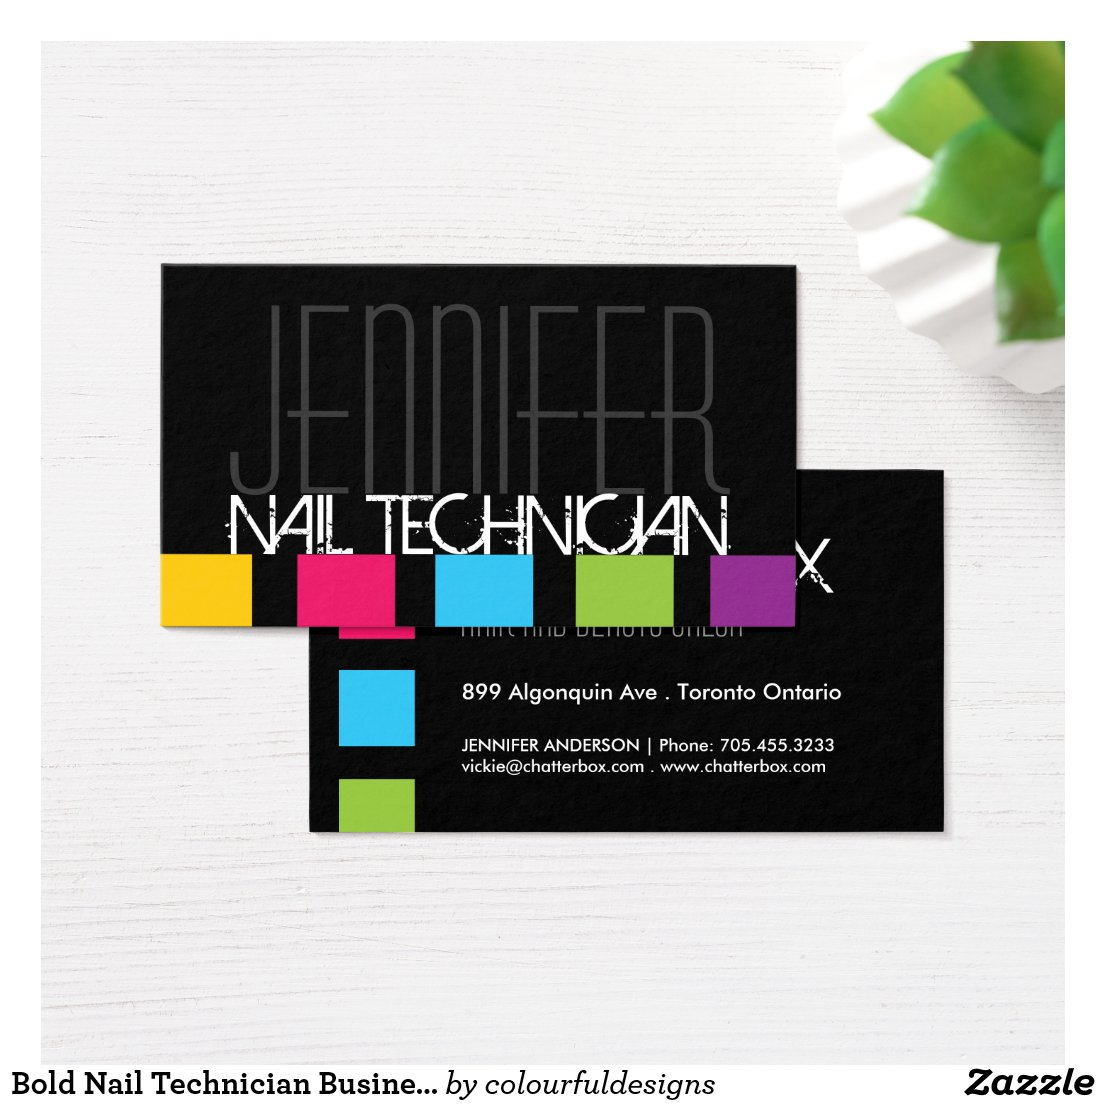 Bold Nail Technician Business Card